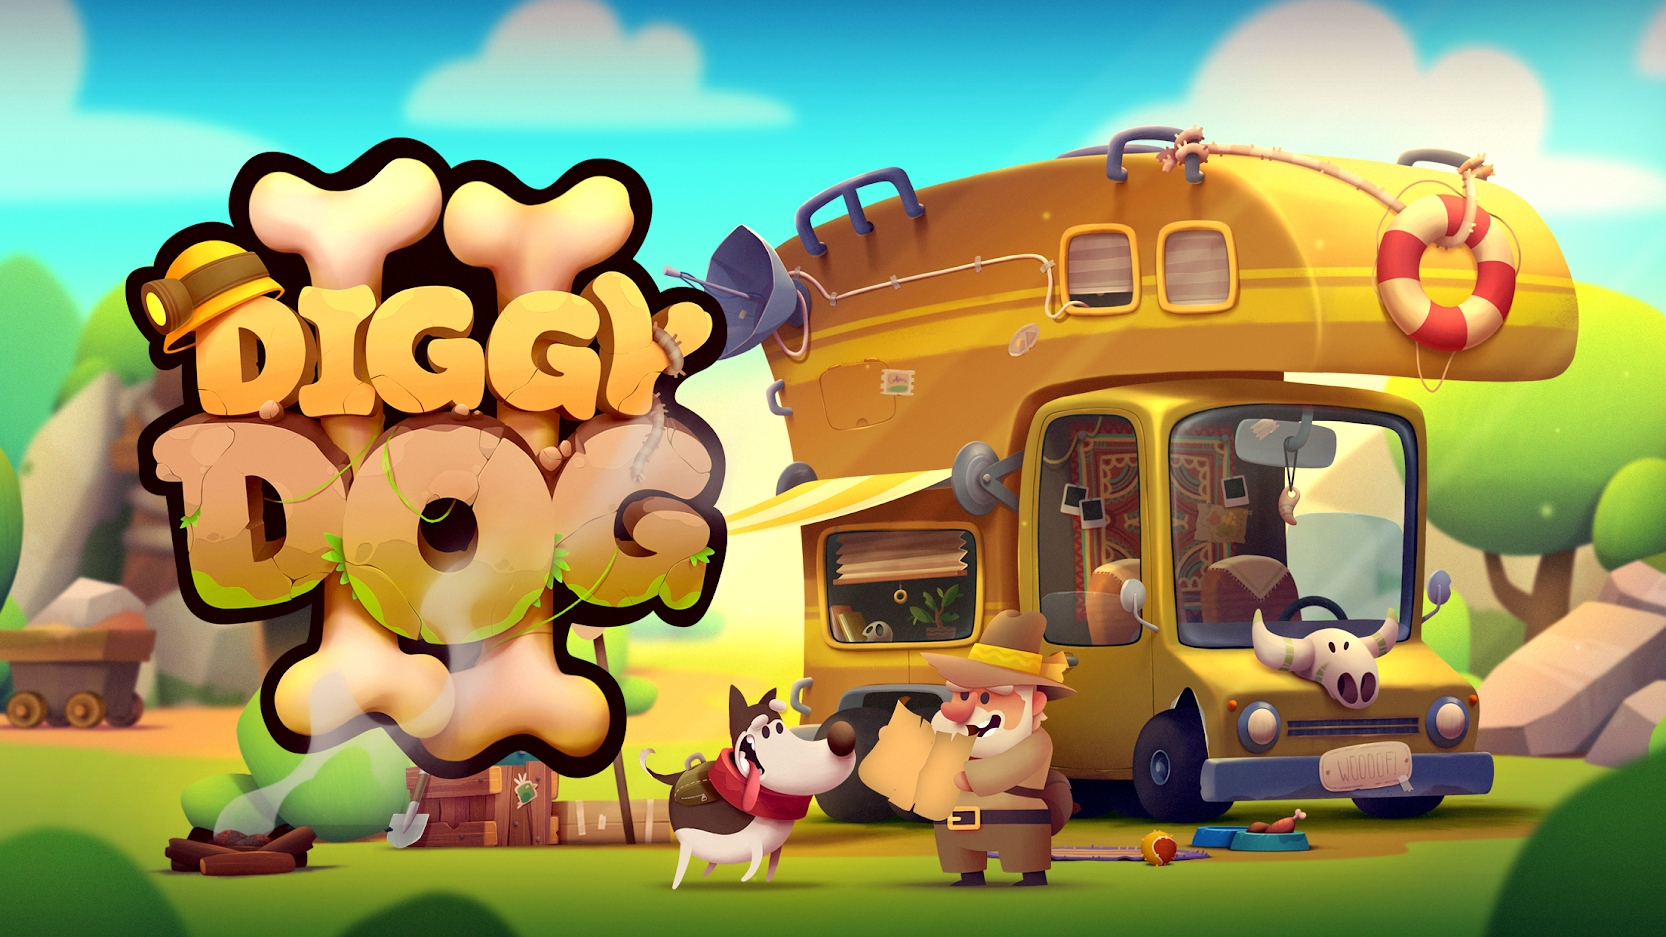 King Bird Games' My Diggy Dog 2 Launches On Steam Early Access This August